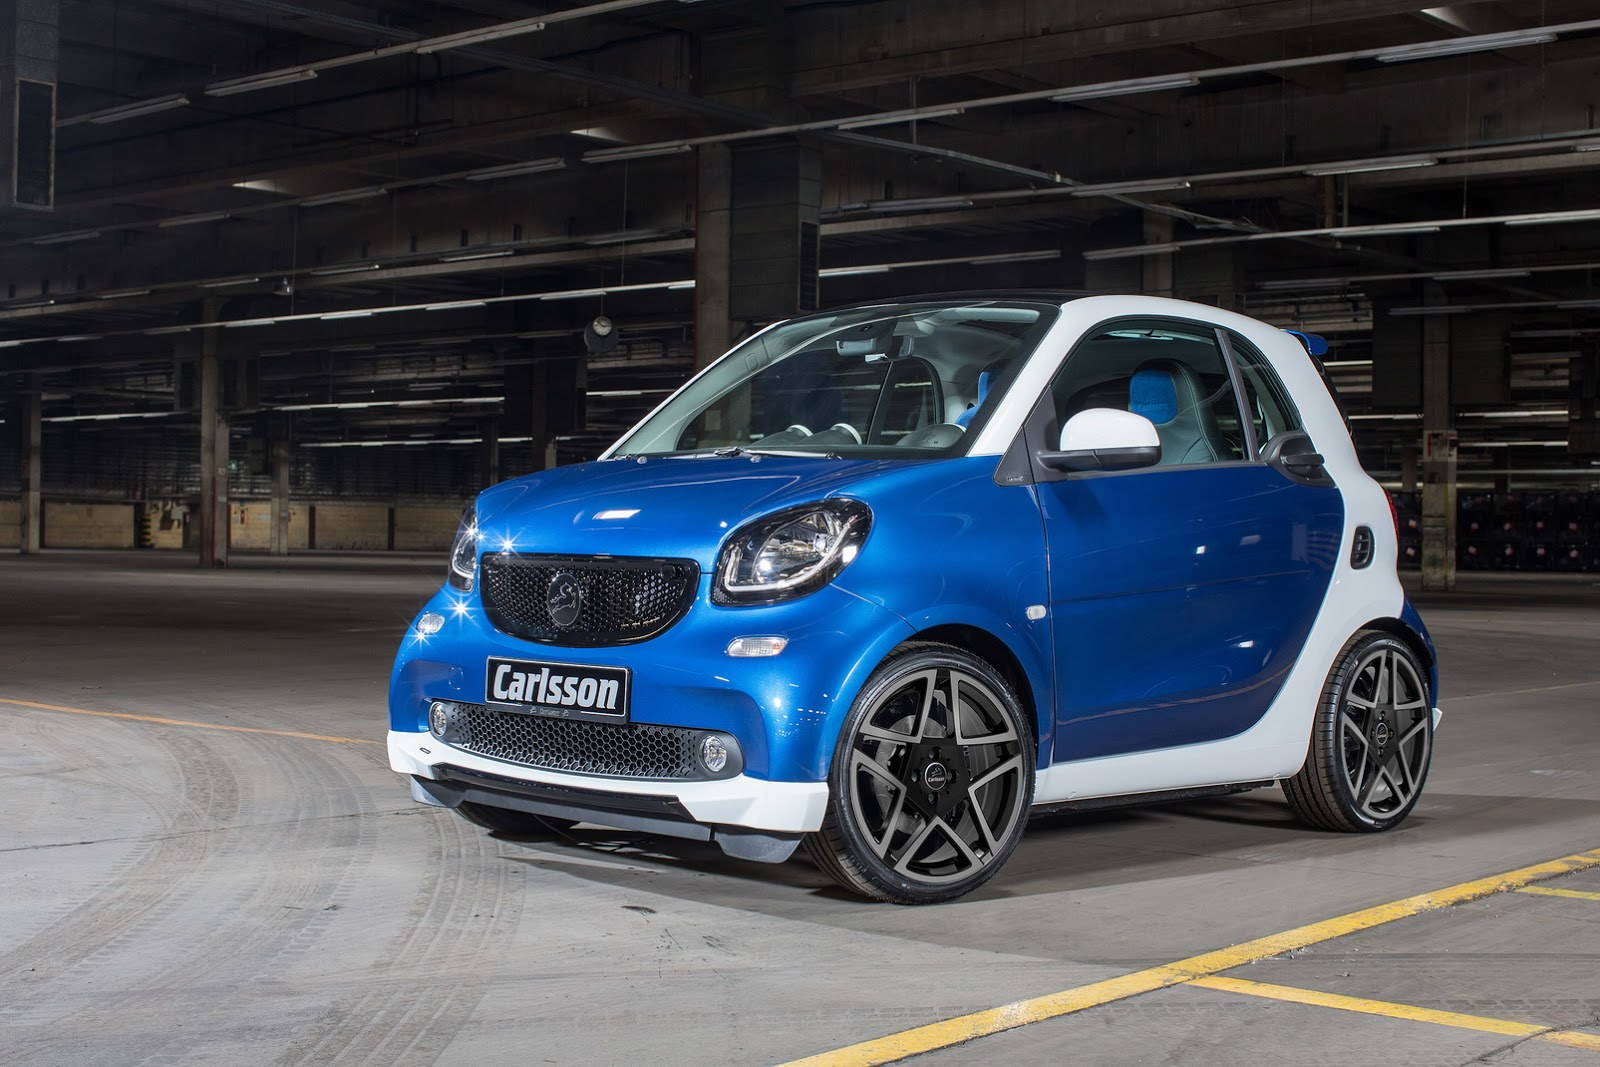 carlsson smart fortwo ck10 tuning kit is a brabus in disguise autoevolution. Black Bedroom Furniture Sets. Home Design Ideas